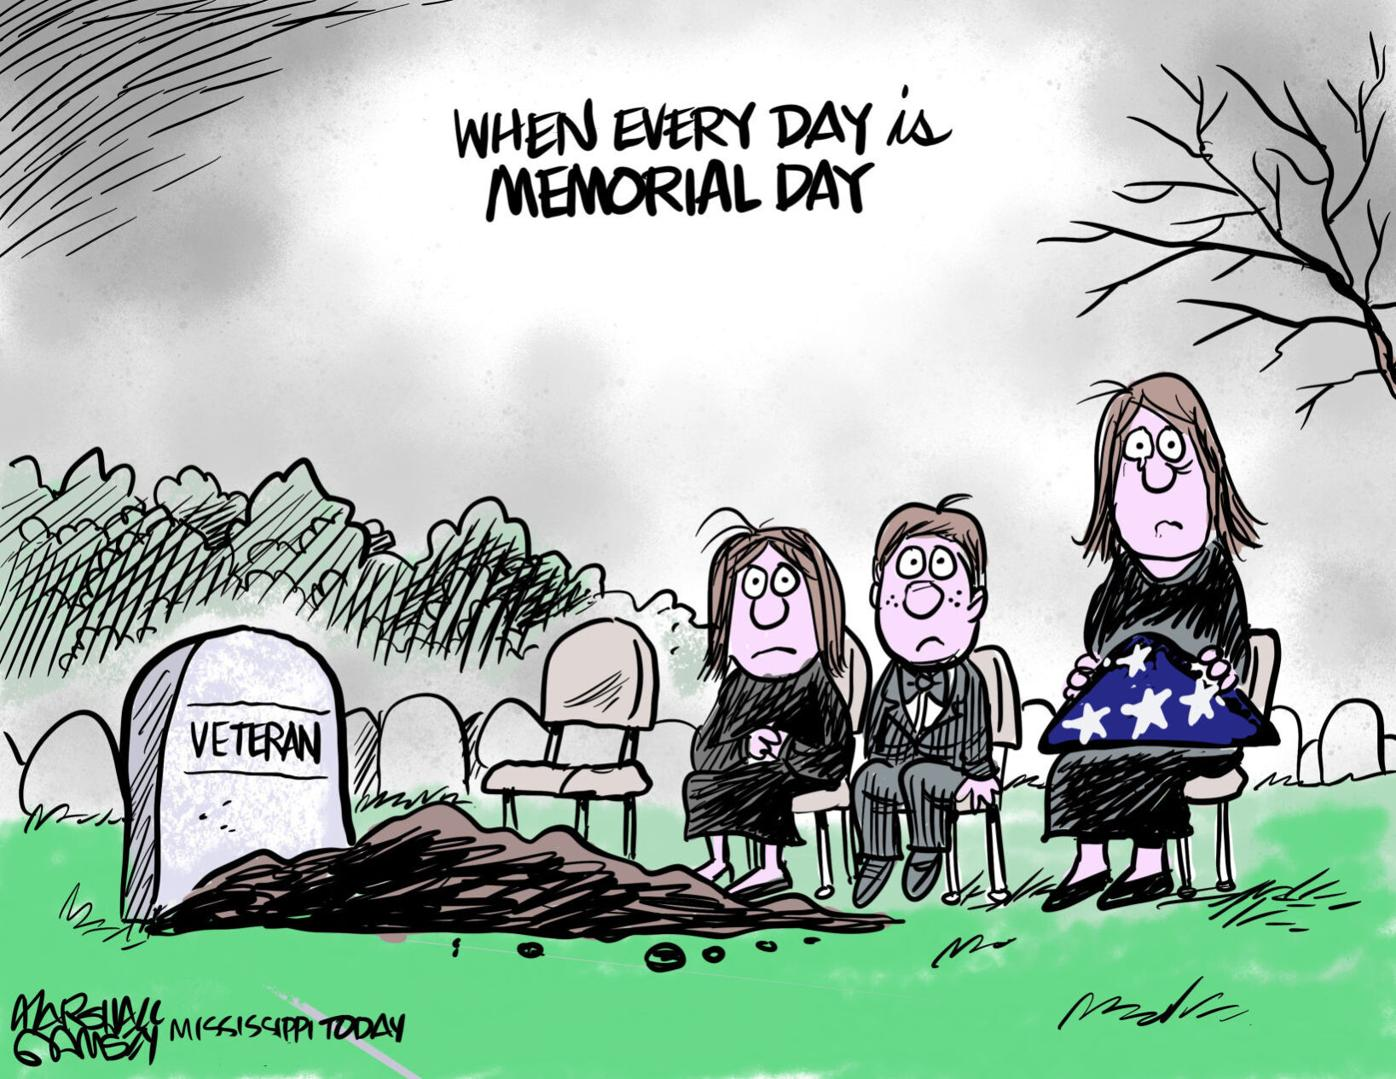 MARSHALL RAMSEY: When every day is Memorial Day